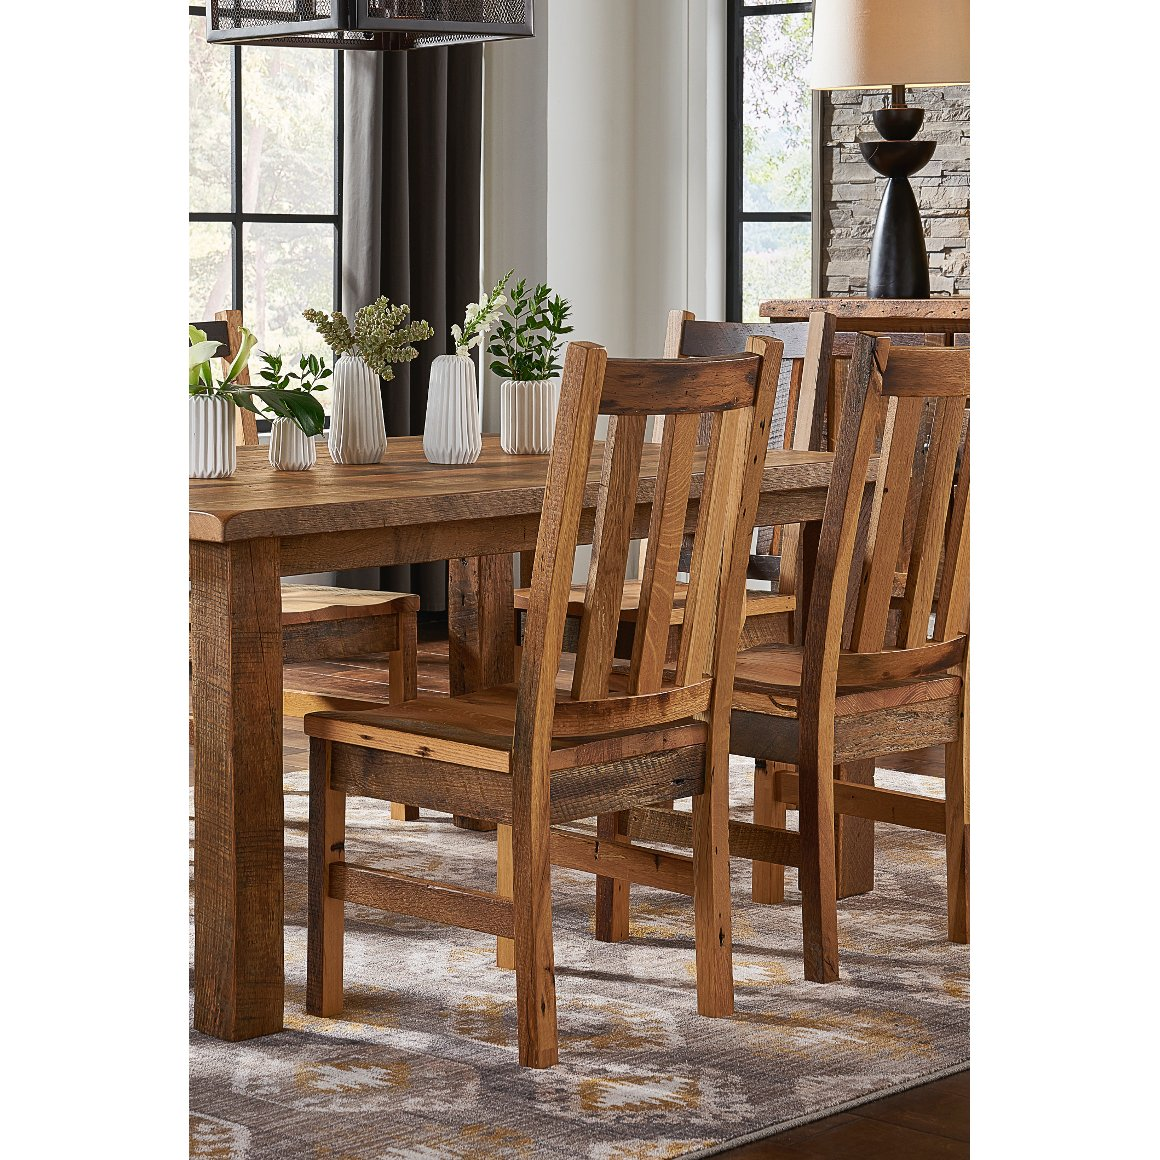 Rustic Reclaimed Wood Dining Room Chair Barnwood Rc Willey Furniture